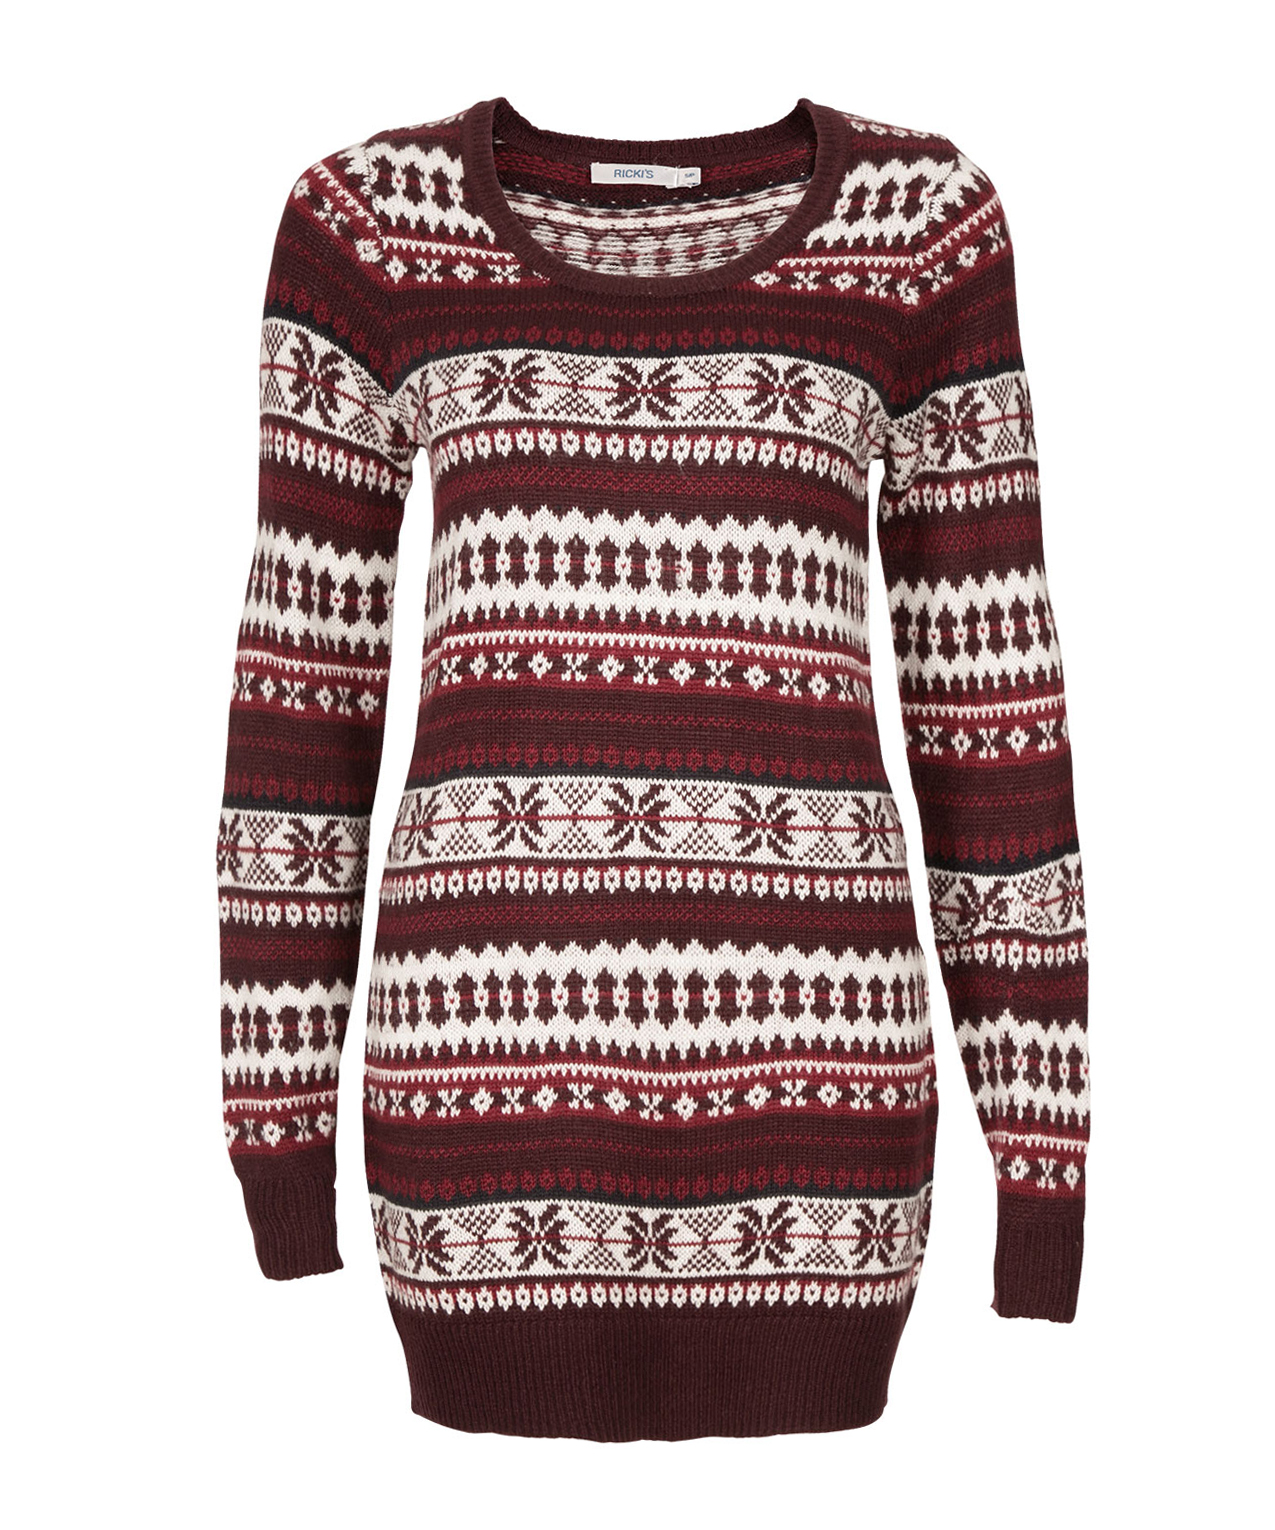 Cozy Fairisle Sweater Tunic | Rickis